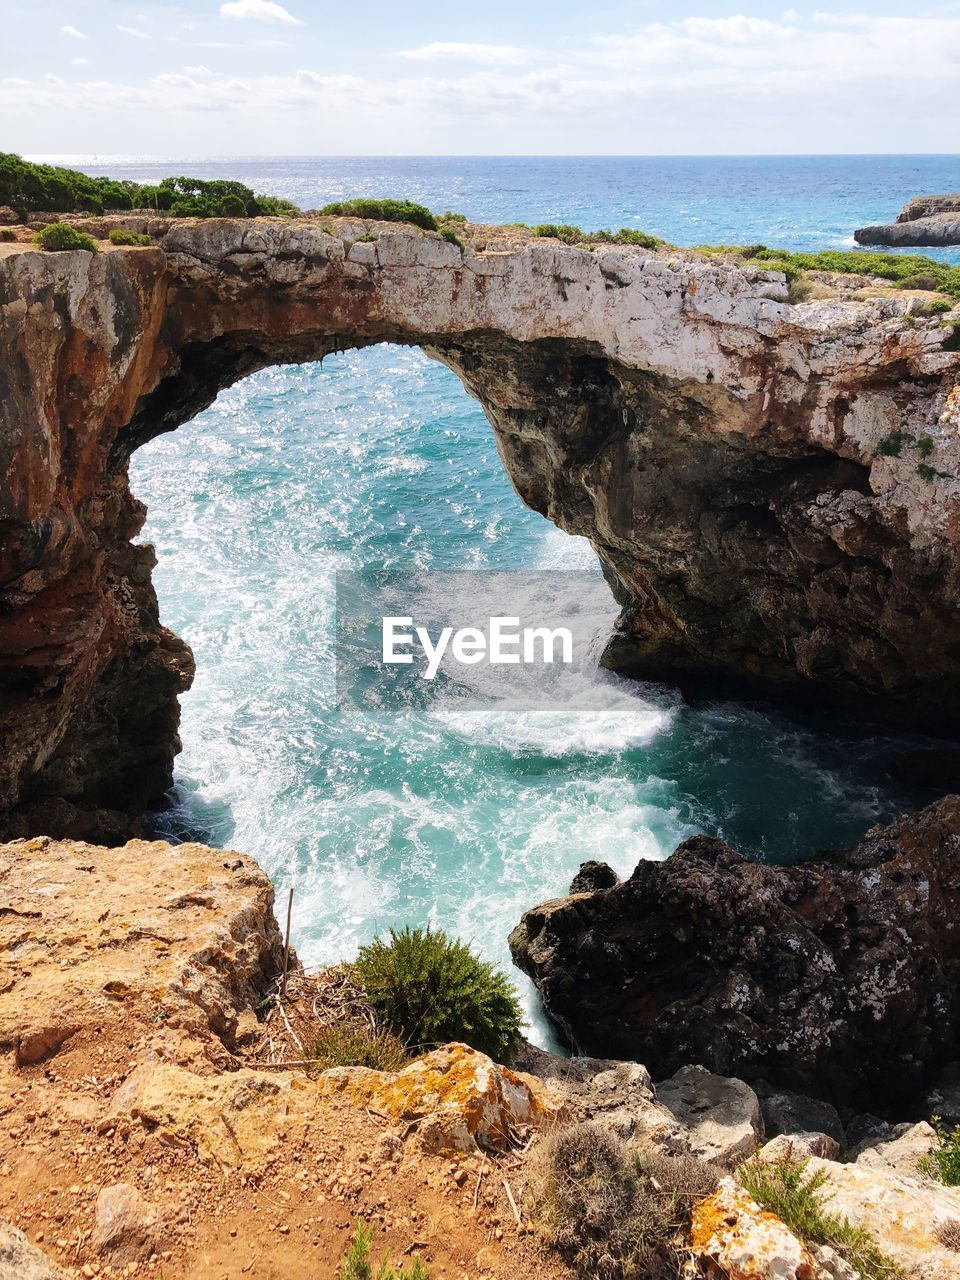 sea, water, rock, rock - object, solid, beauty in nature, rock formation, scenics - nature, land, nature, beach, tranquility, sky, no people, day, tranquil scene, horizon, motion, horizon over water, natural arch, outdoors, power in nature, eroded